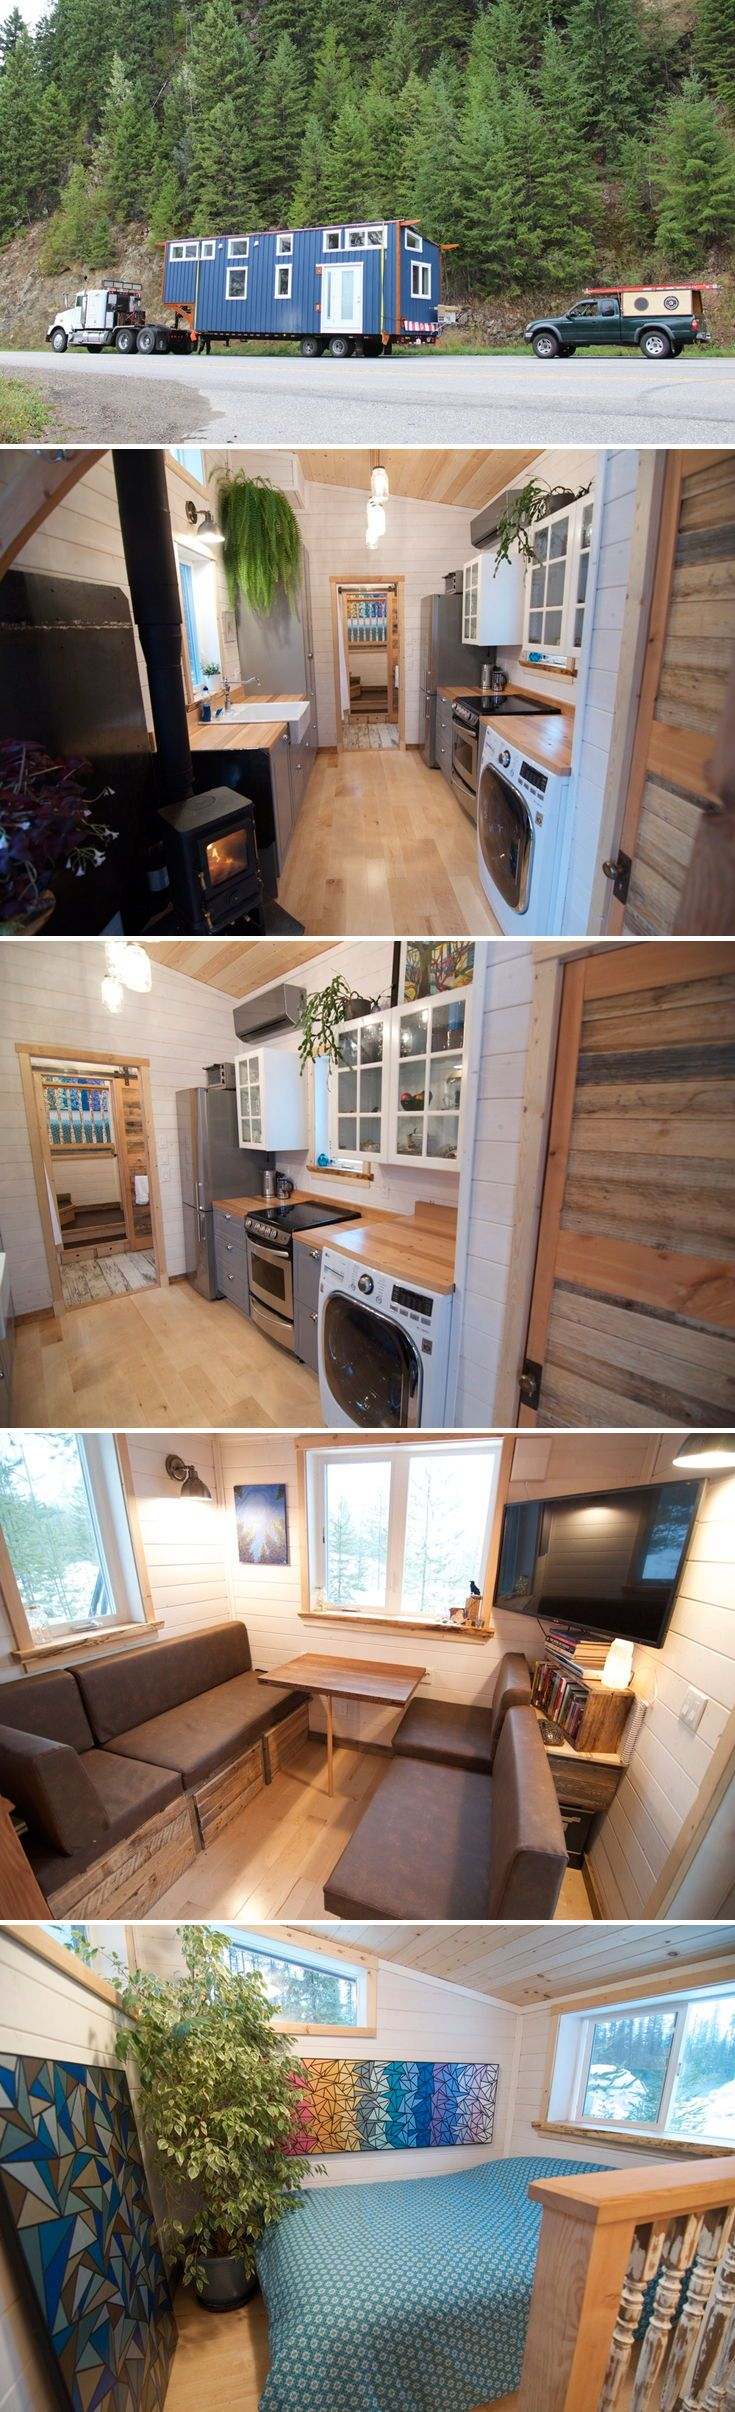 Winter Wonderland by Nelson Tiny Houses - Tiny Living